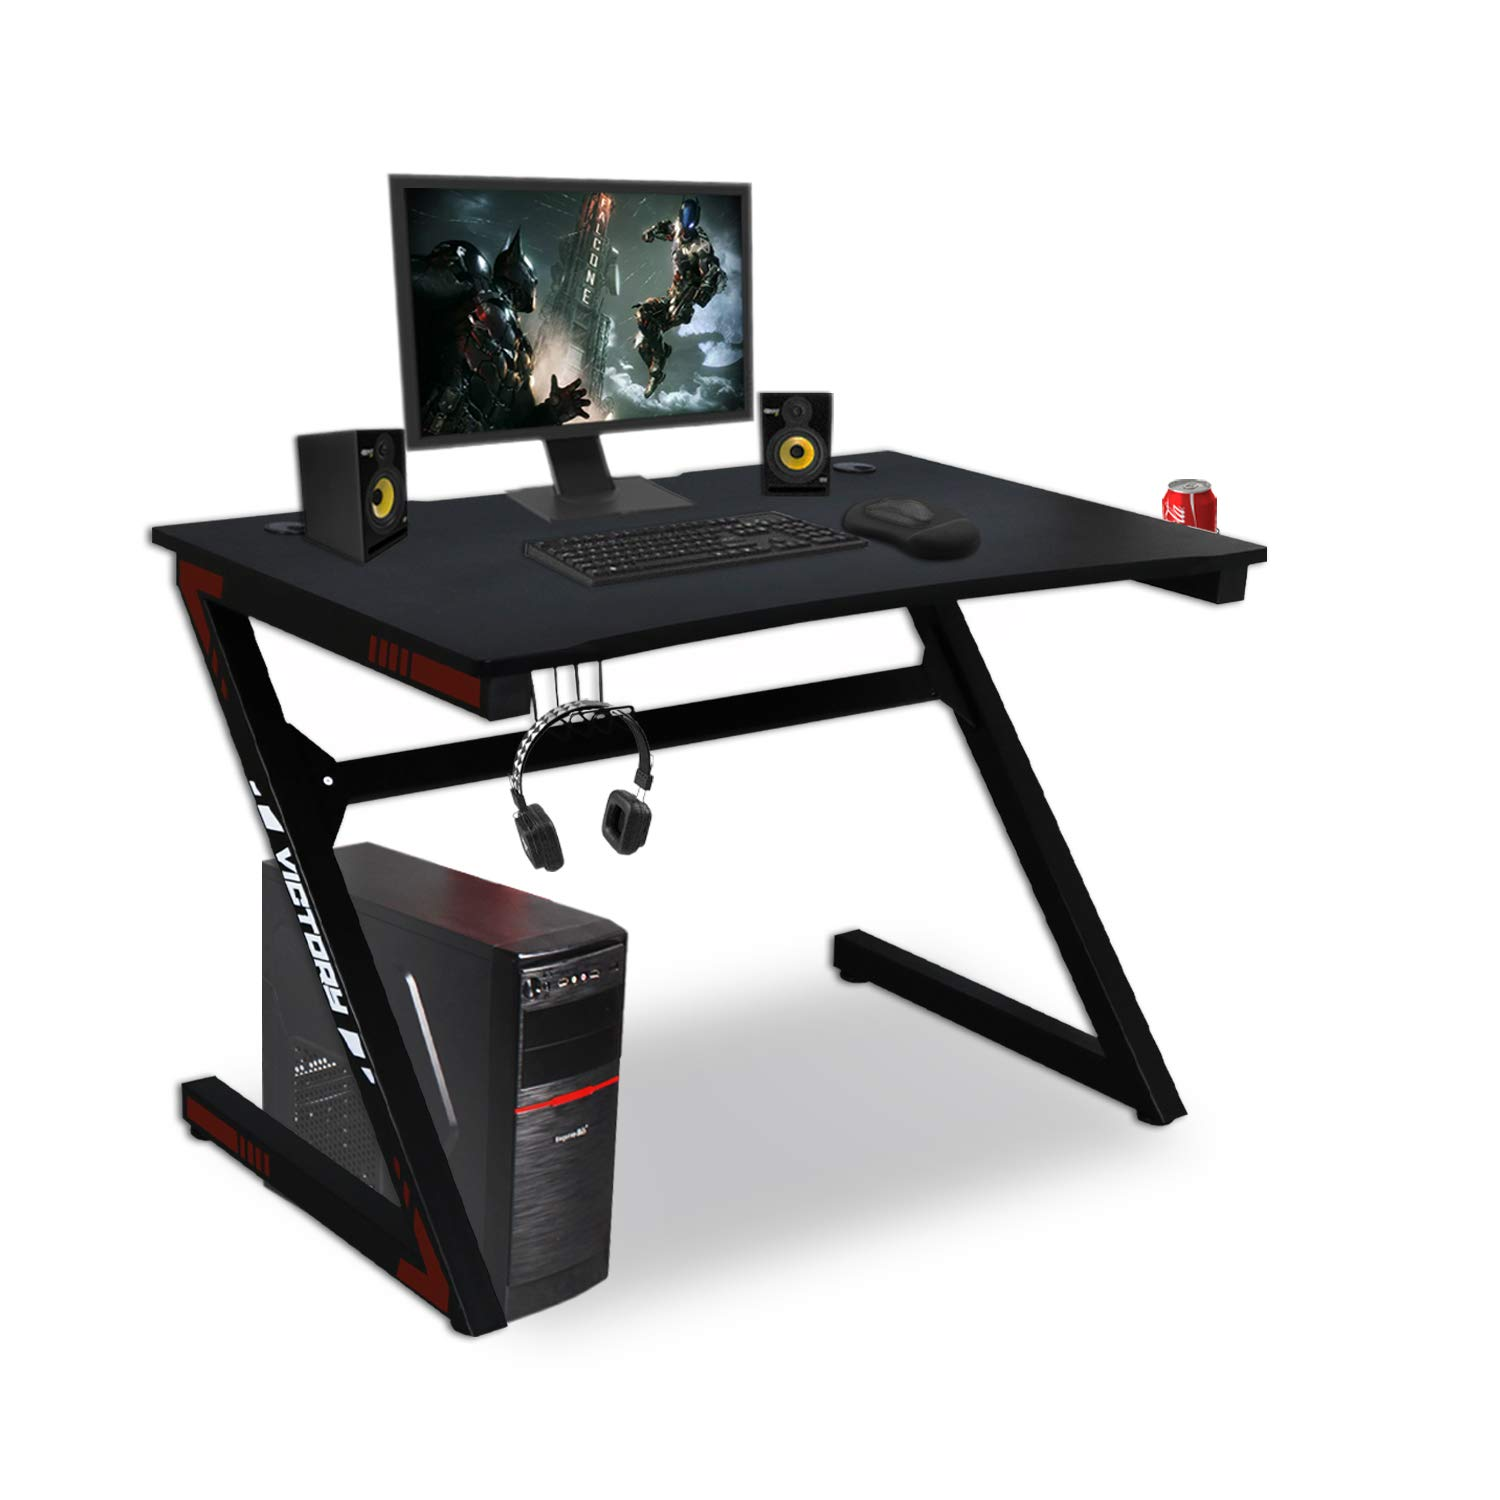 Kazila Gaming Desk Computer Table for Home Office Sturdy Desk with Cup Holder, Headphone Hook Gamer Workstation Laptop PC Desk,Red by Kazila